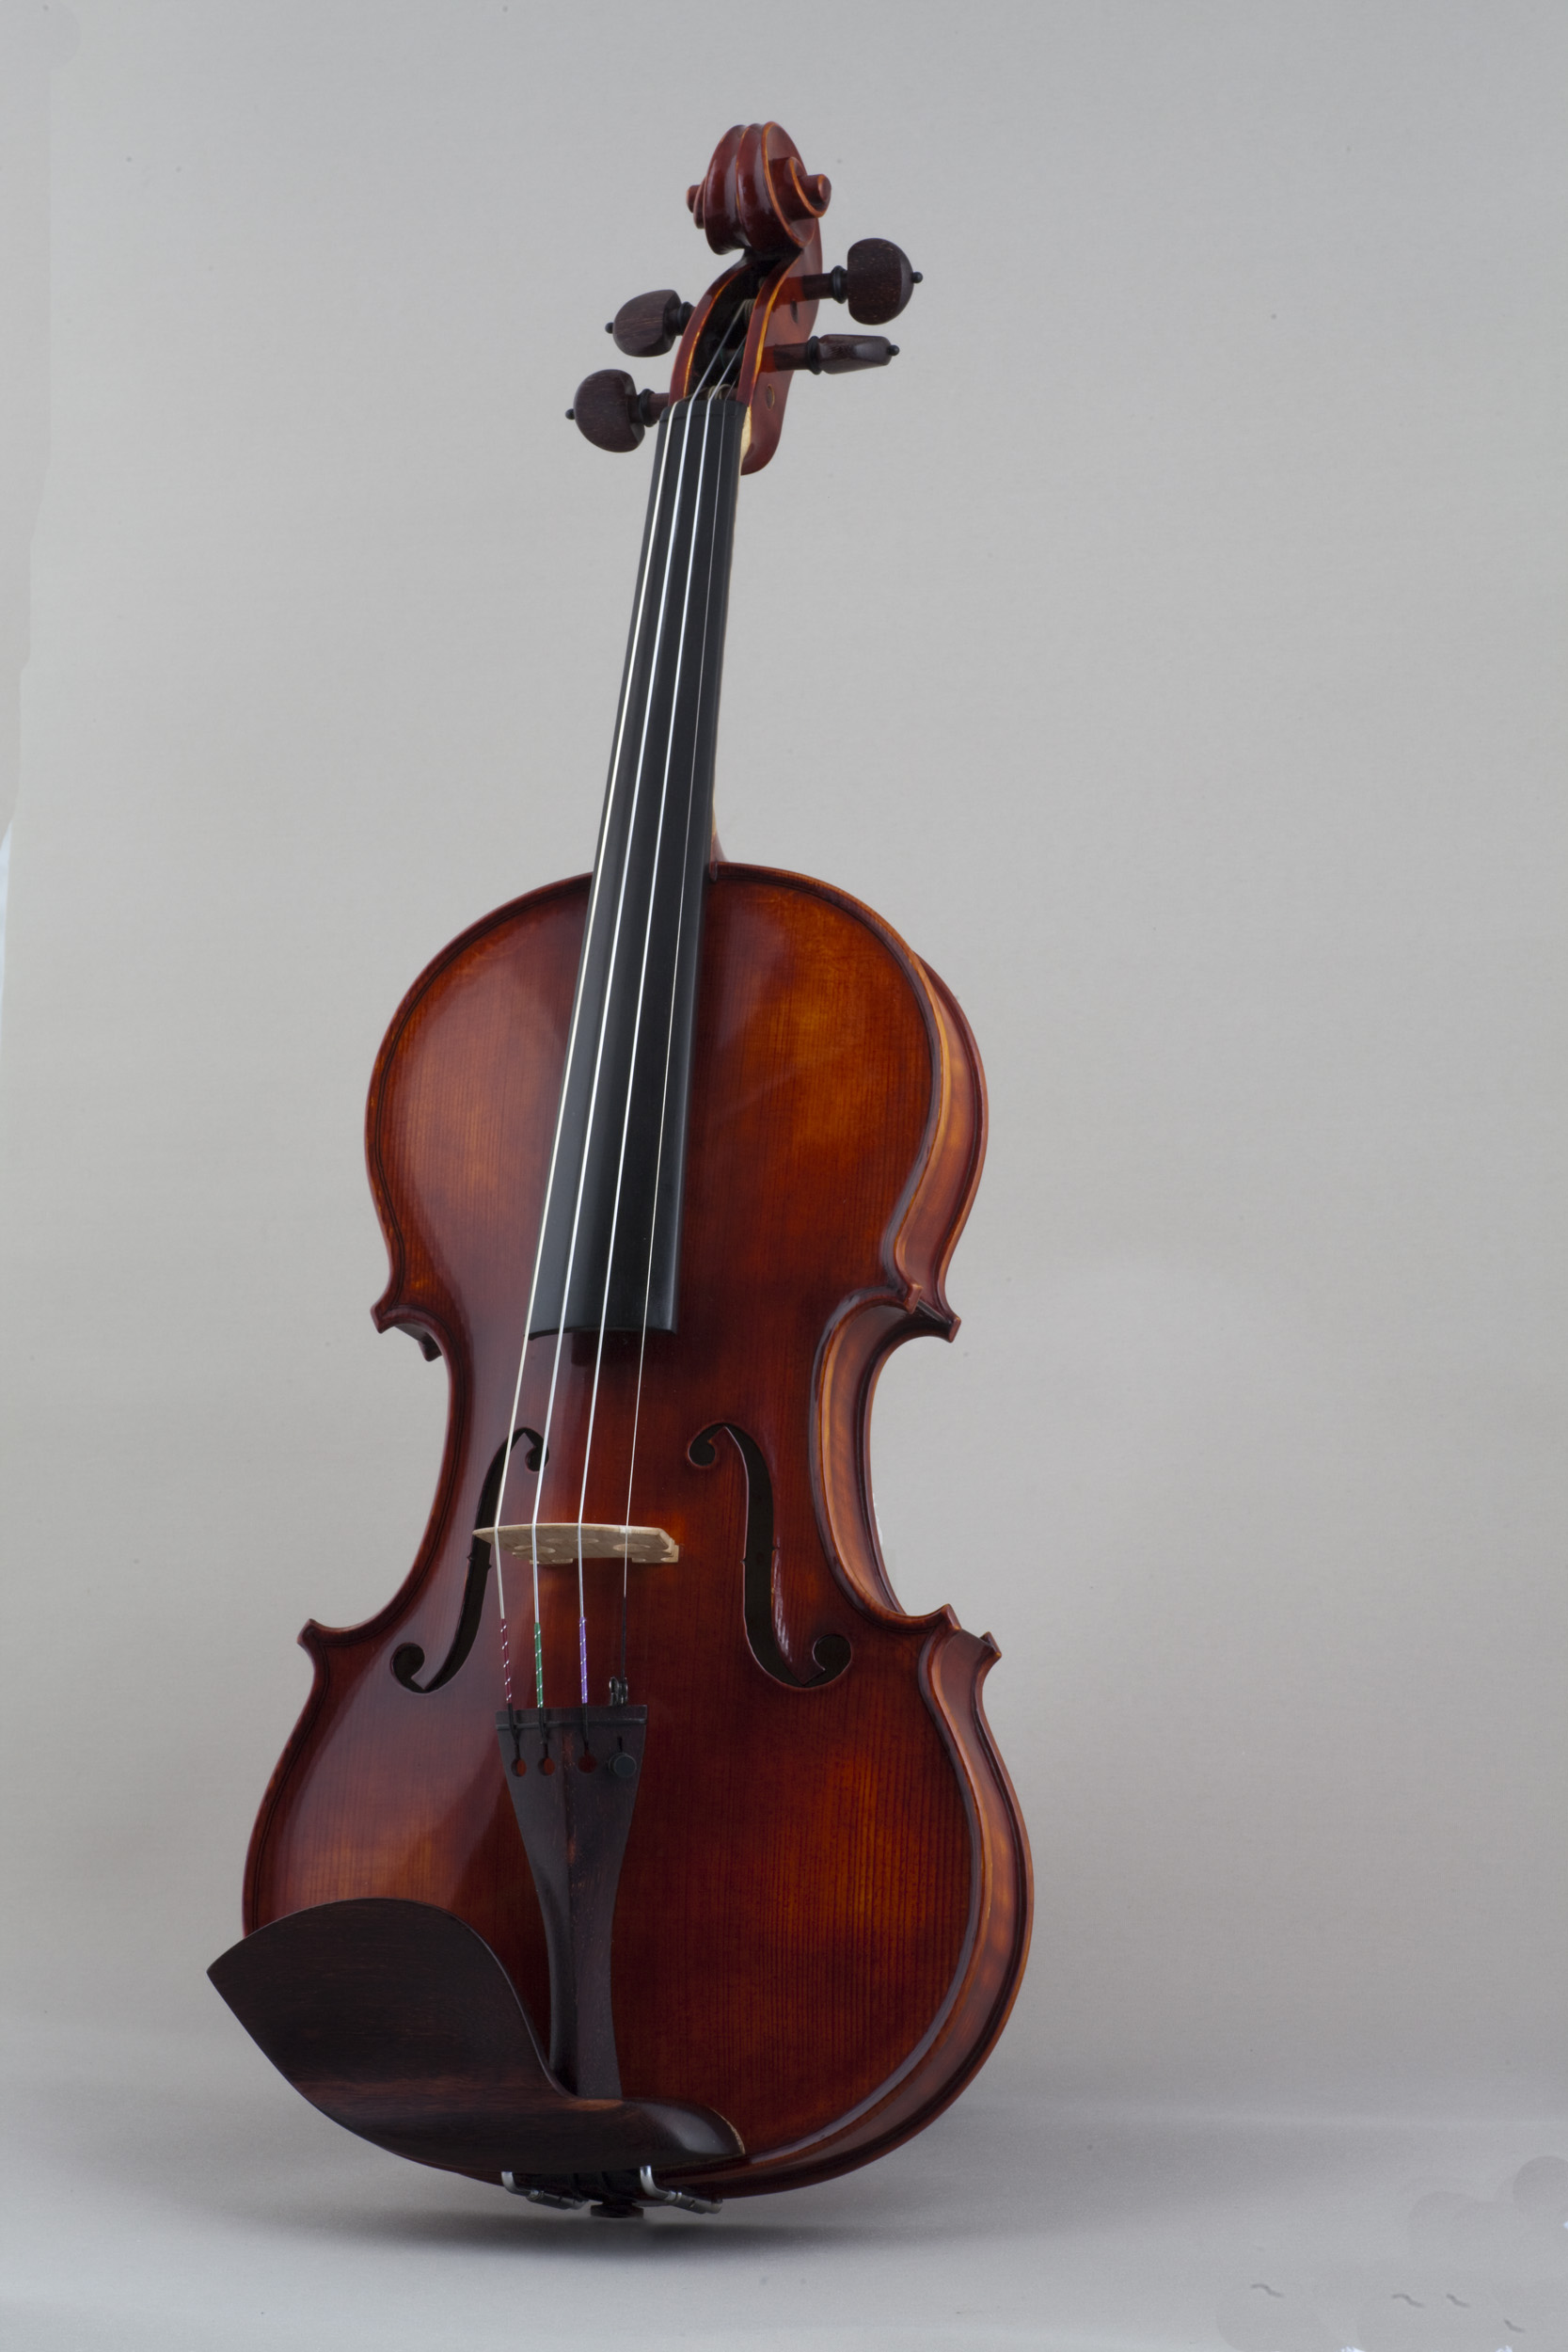 Mather_6949_Will Mackay's Violin Oct 201